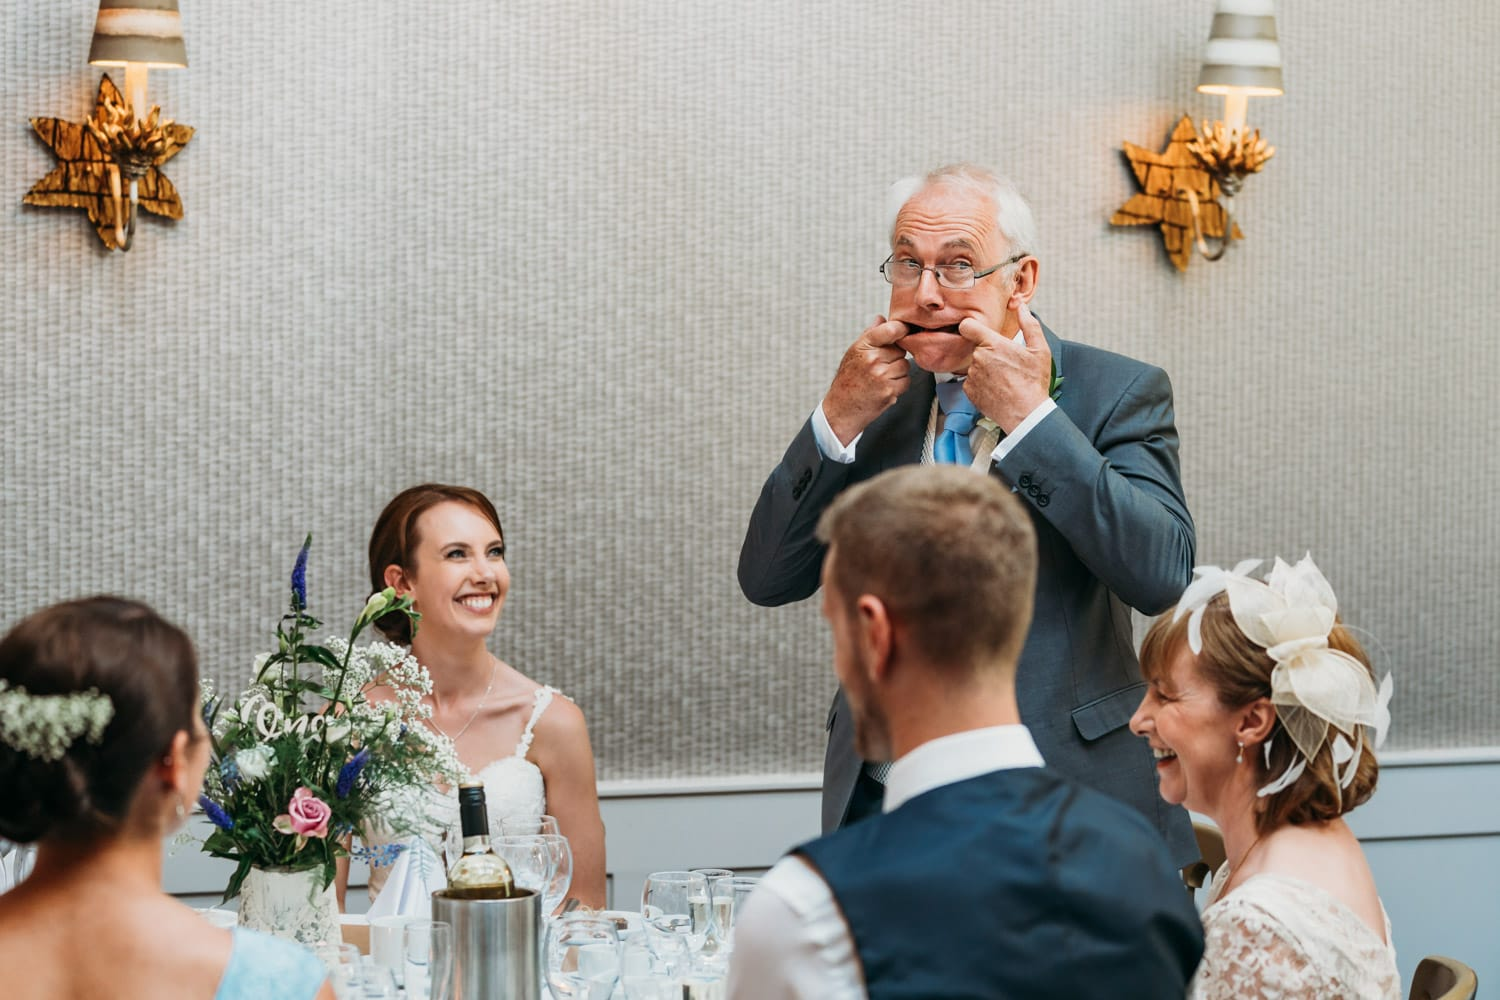 Father of bride pulls a funny face as he's delivering his wedding speech